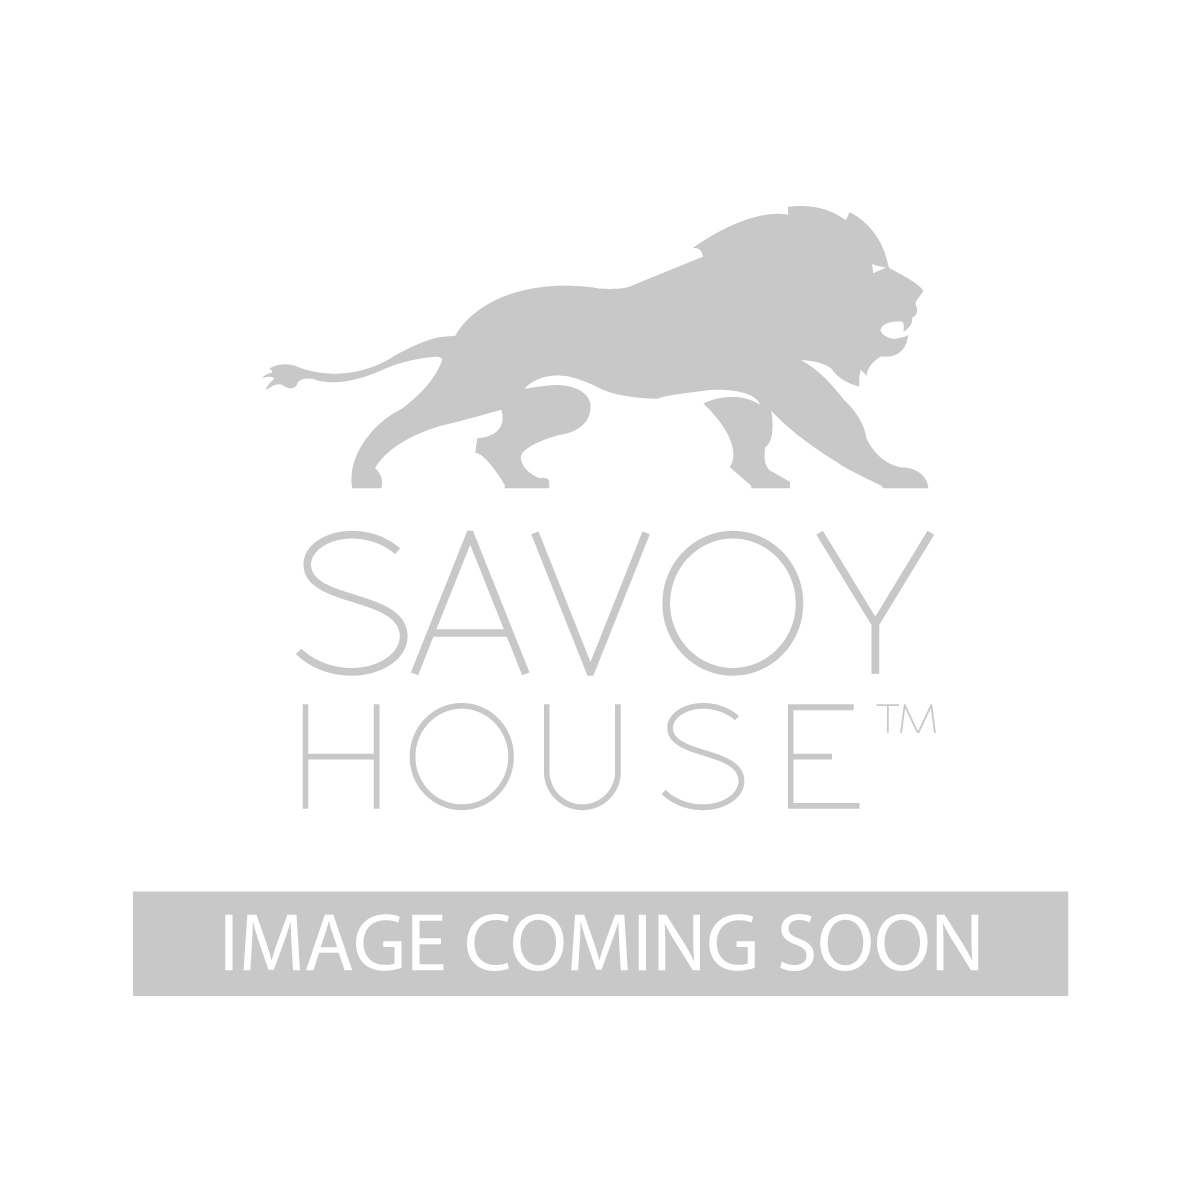 52 ecm 5rv 13 first value ceiling fan by savoy house first value ceiling fan aloadofball Gallery